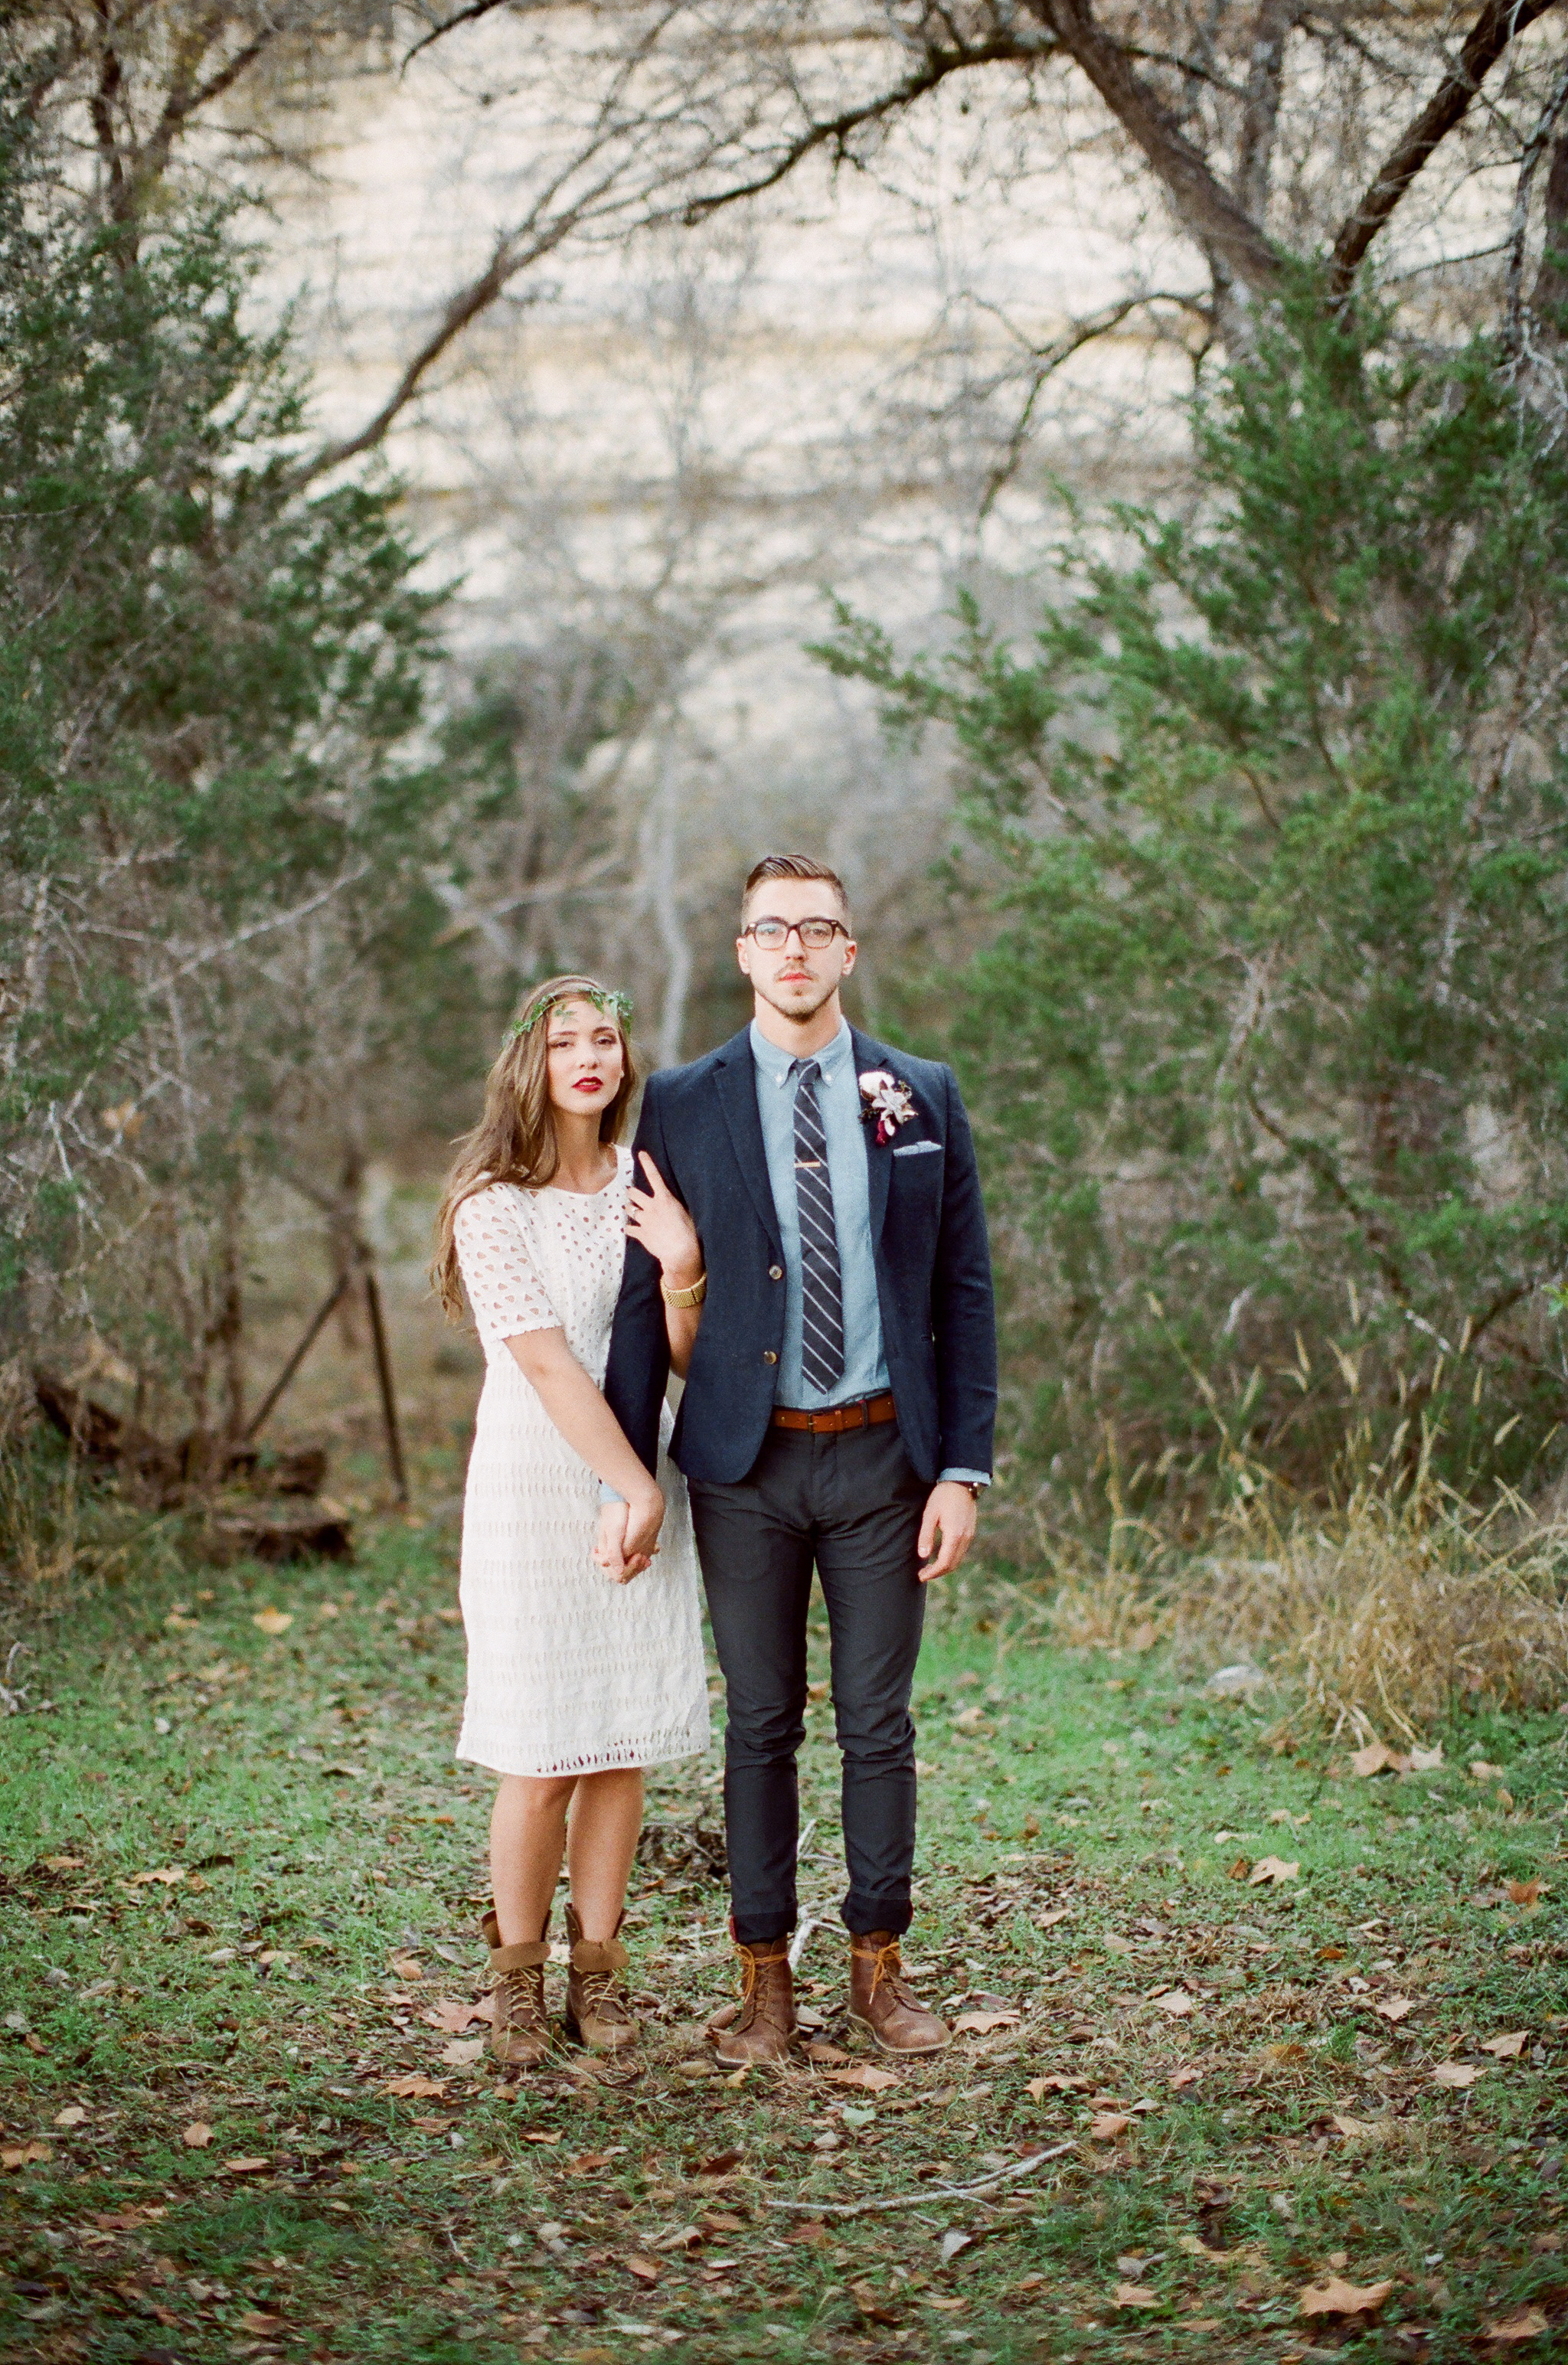 Hunter + Lainey - GREEN WEDDING SHOES